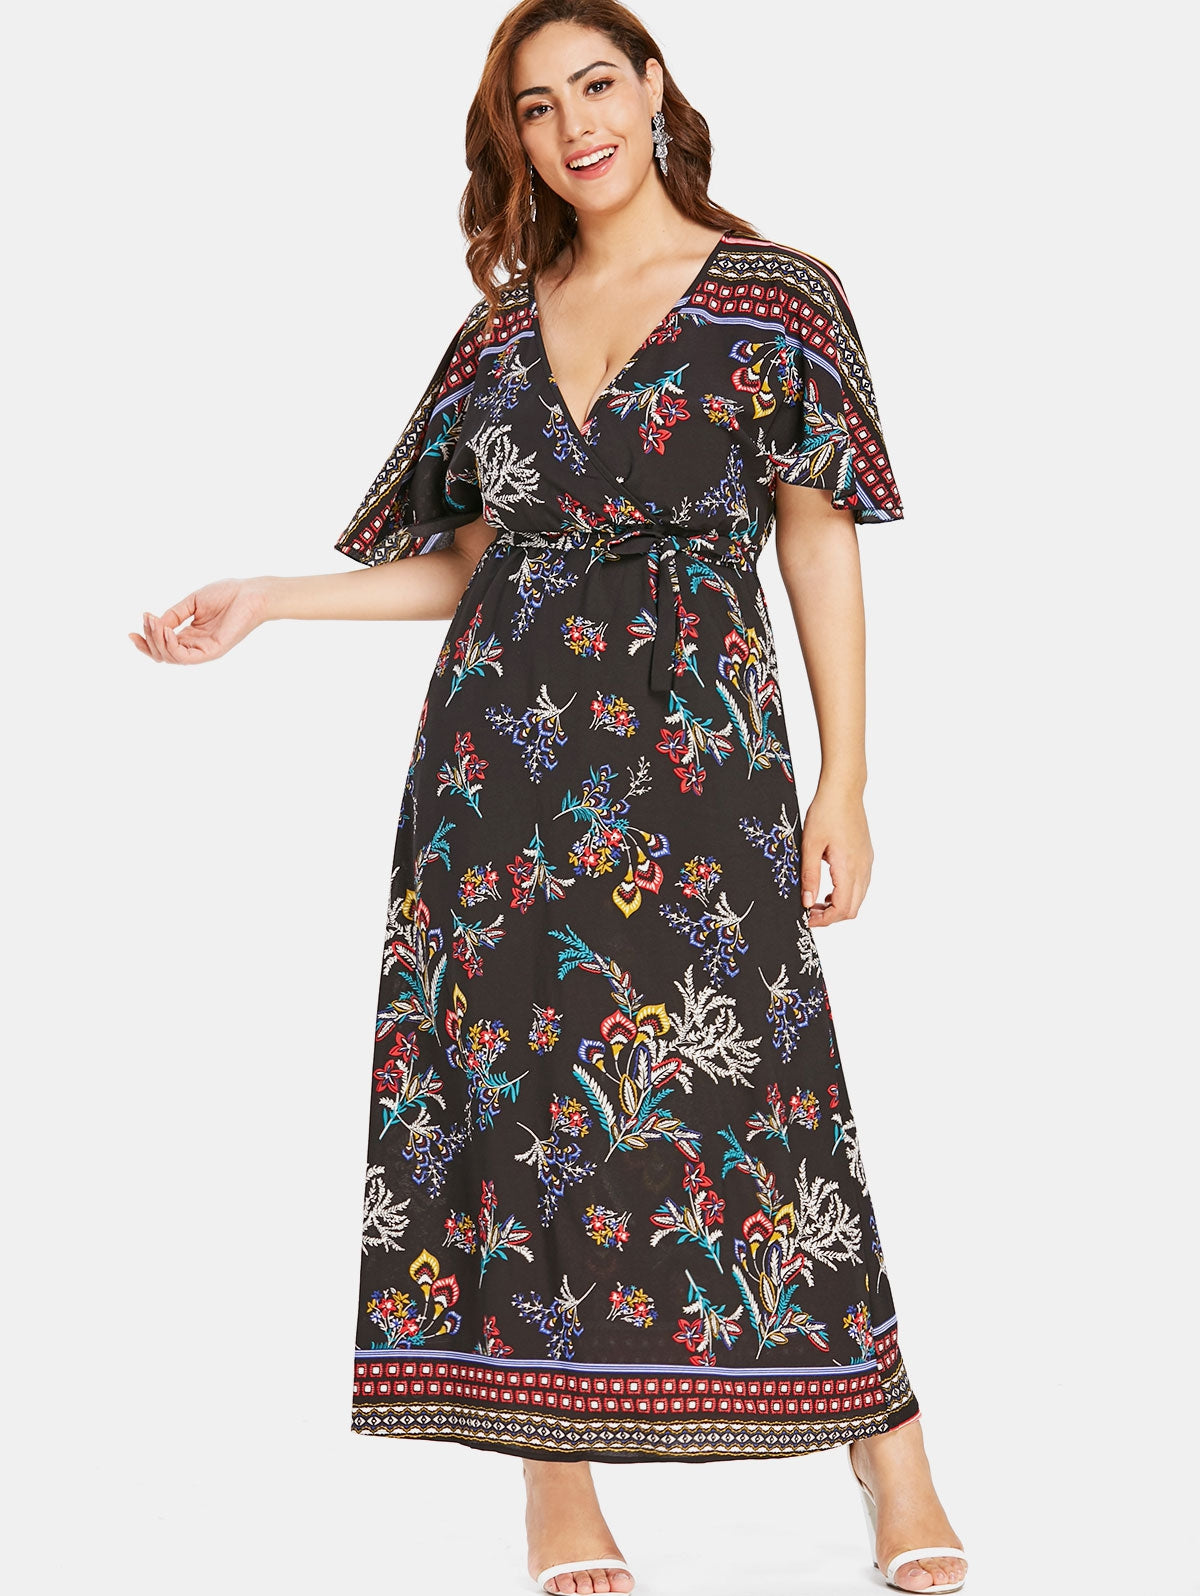 Plus Size Floral Print Maxi Dress with Belt - That Swag Tho